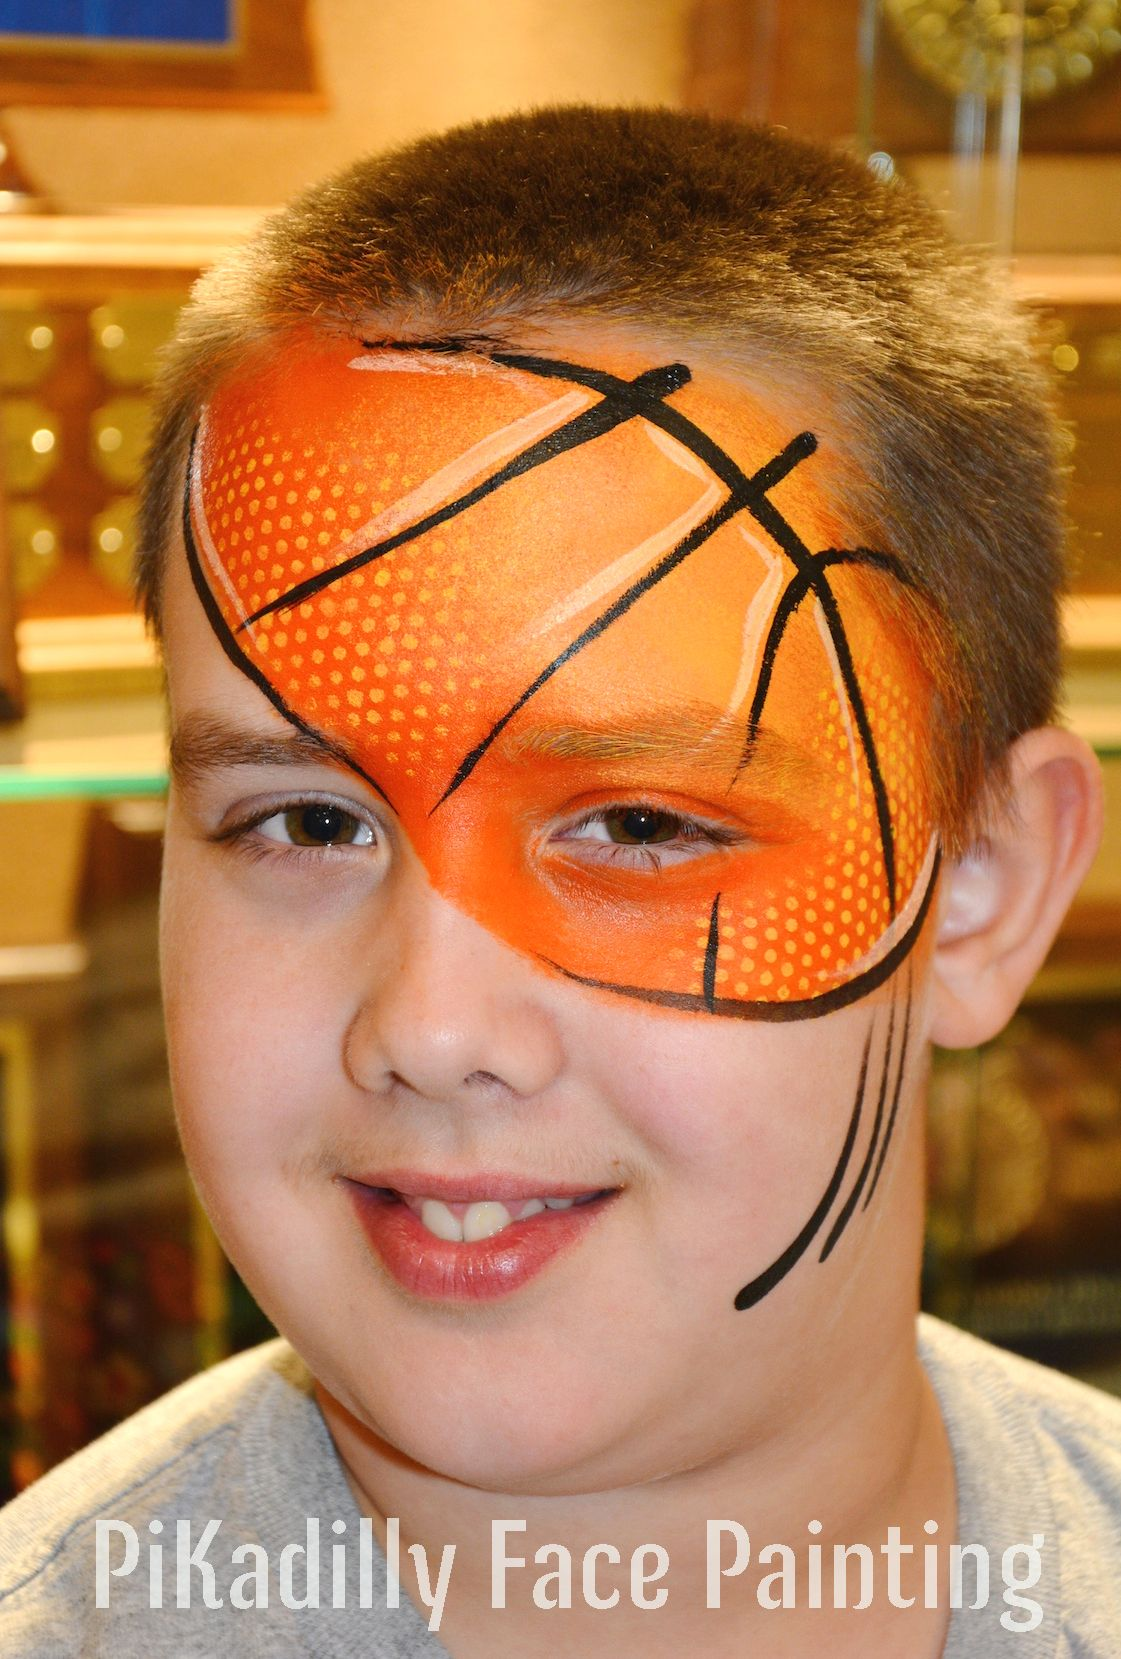 basketball design from pikadilly face painting face painting football face paint face. Black Bedroom Furniture Sets. Home Design Ideas